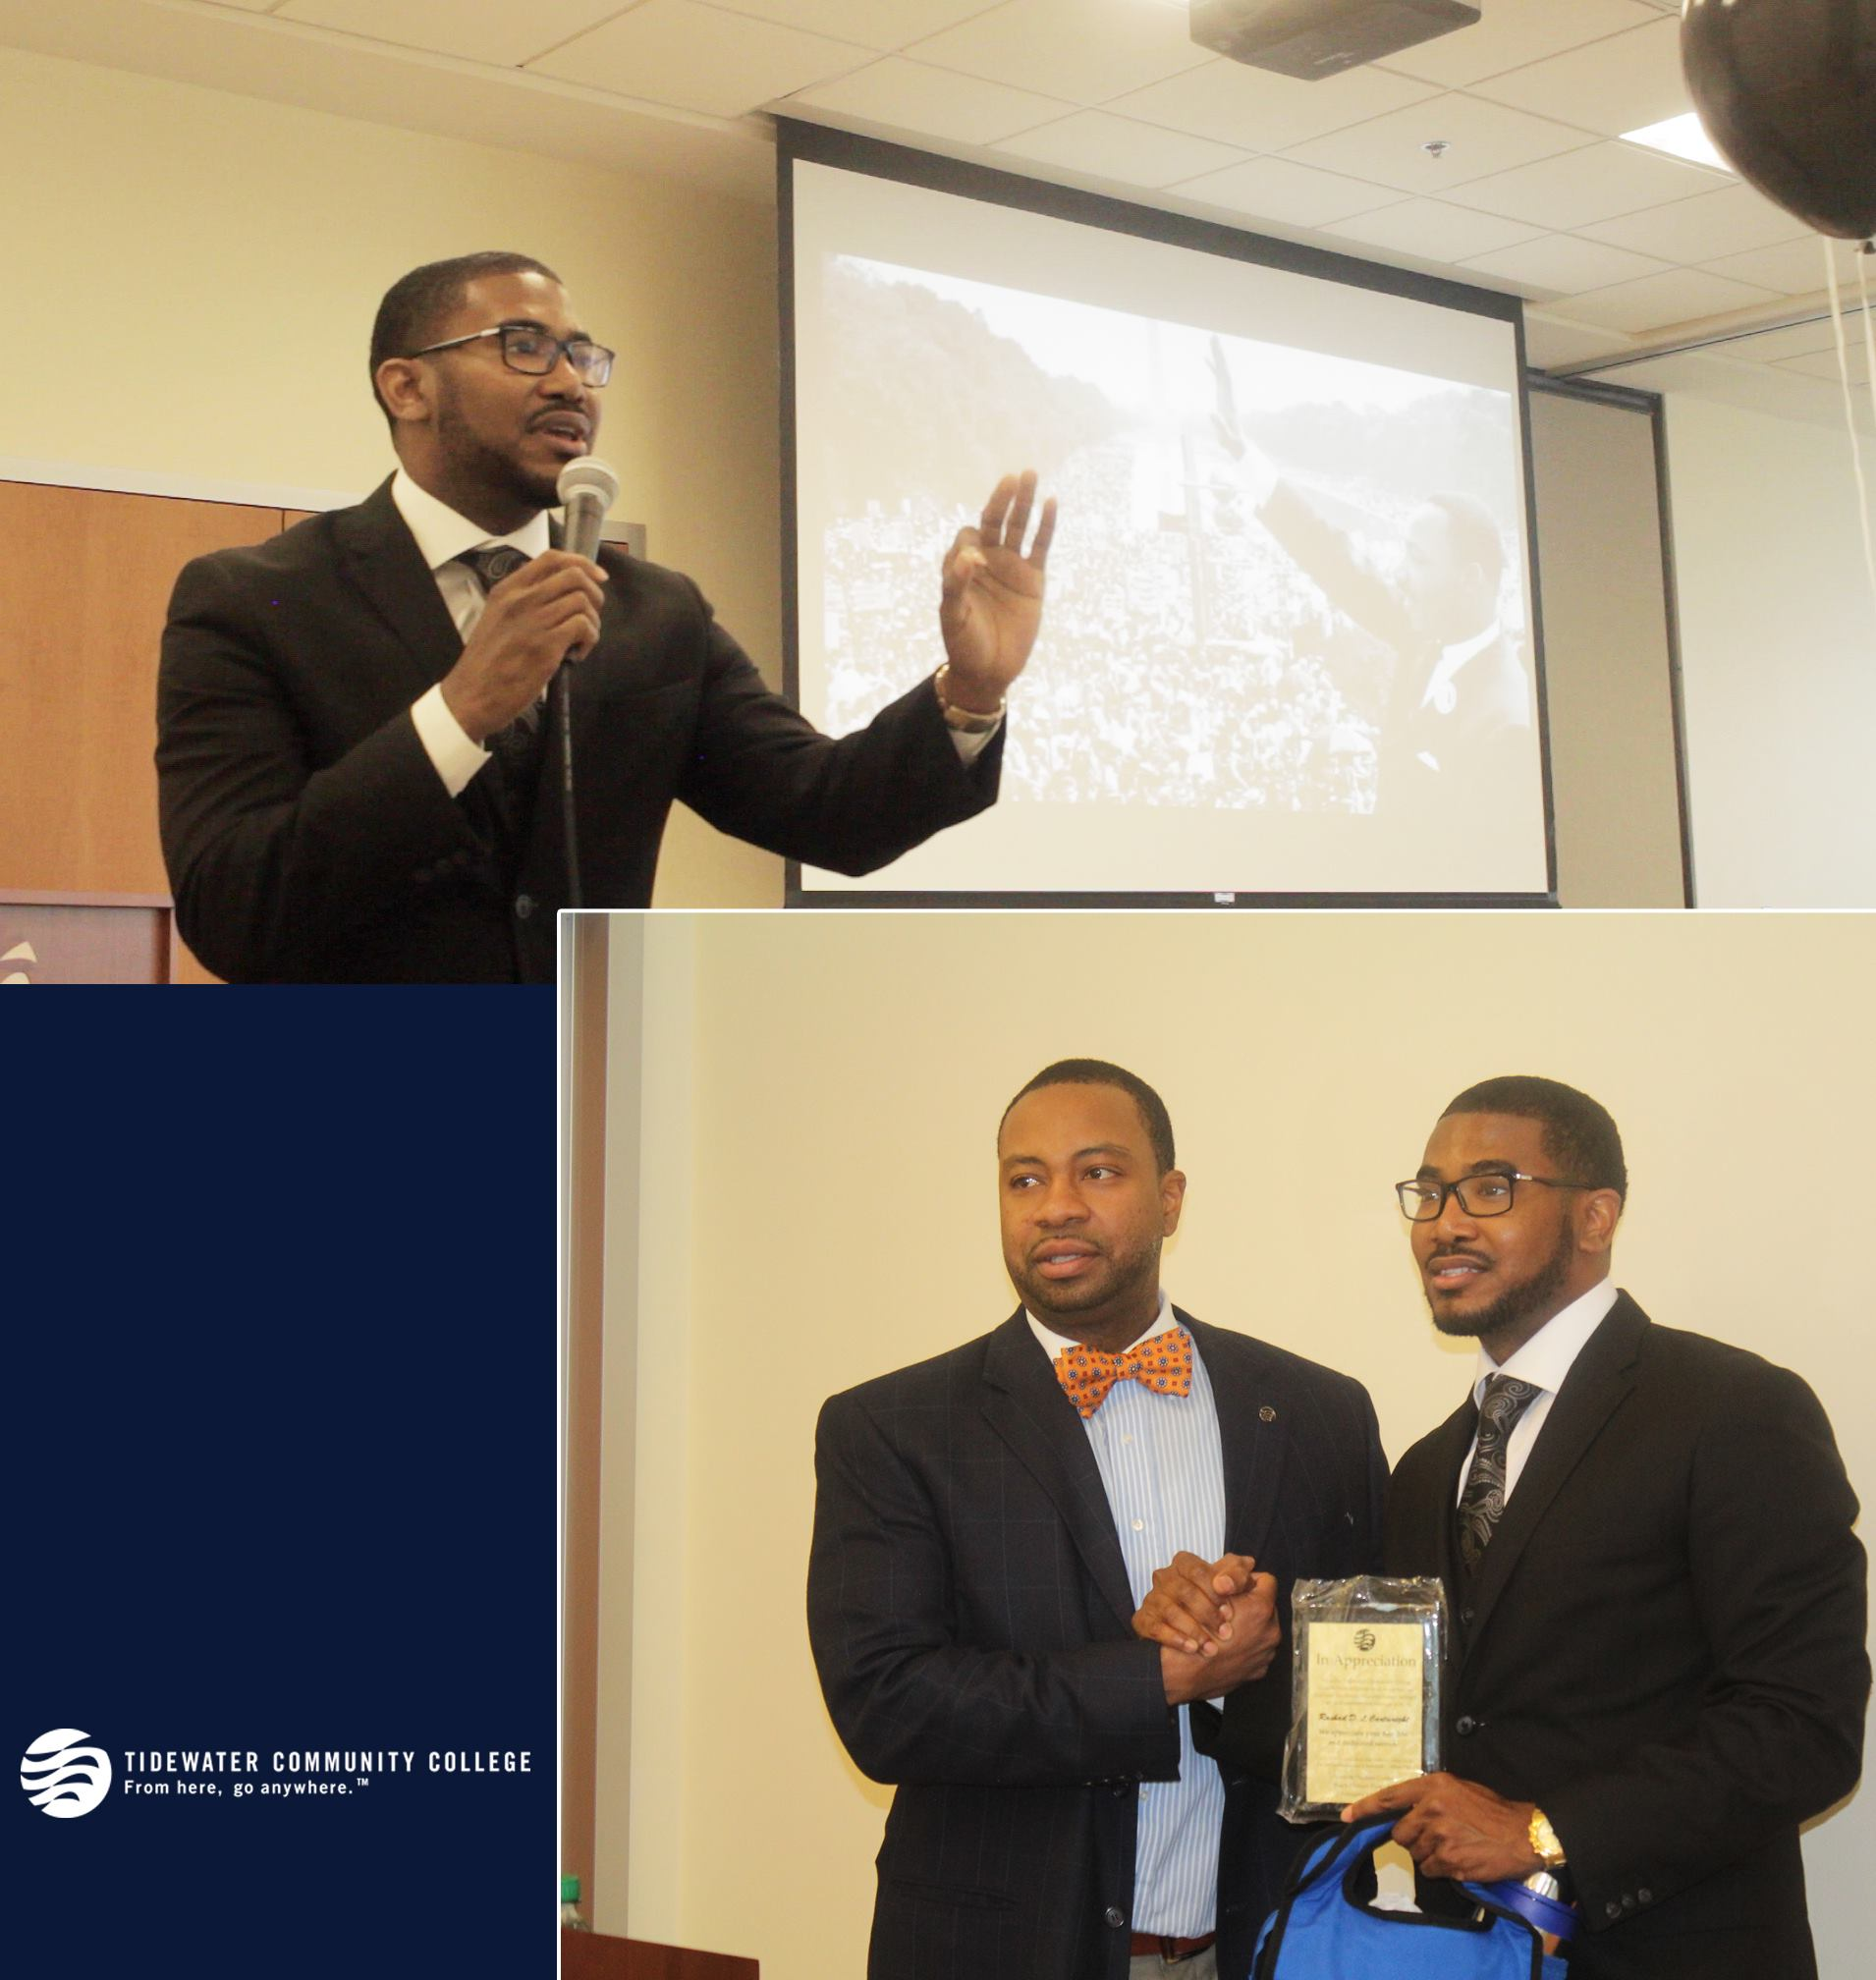 Rashad Cartwright speaking at Tidewater Community College for Black History Month